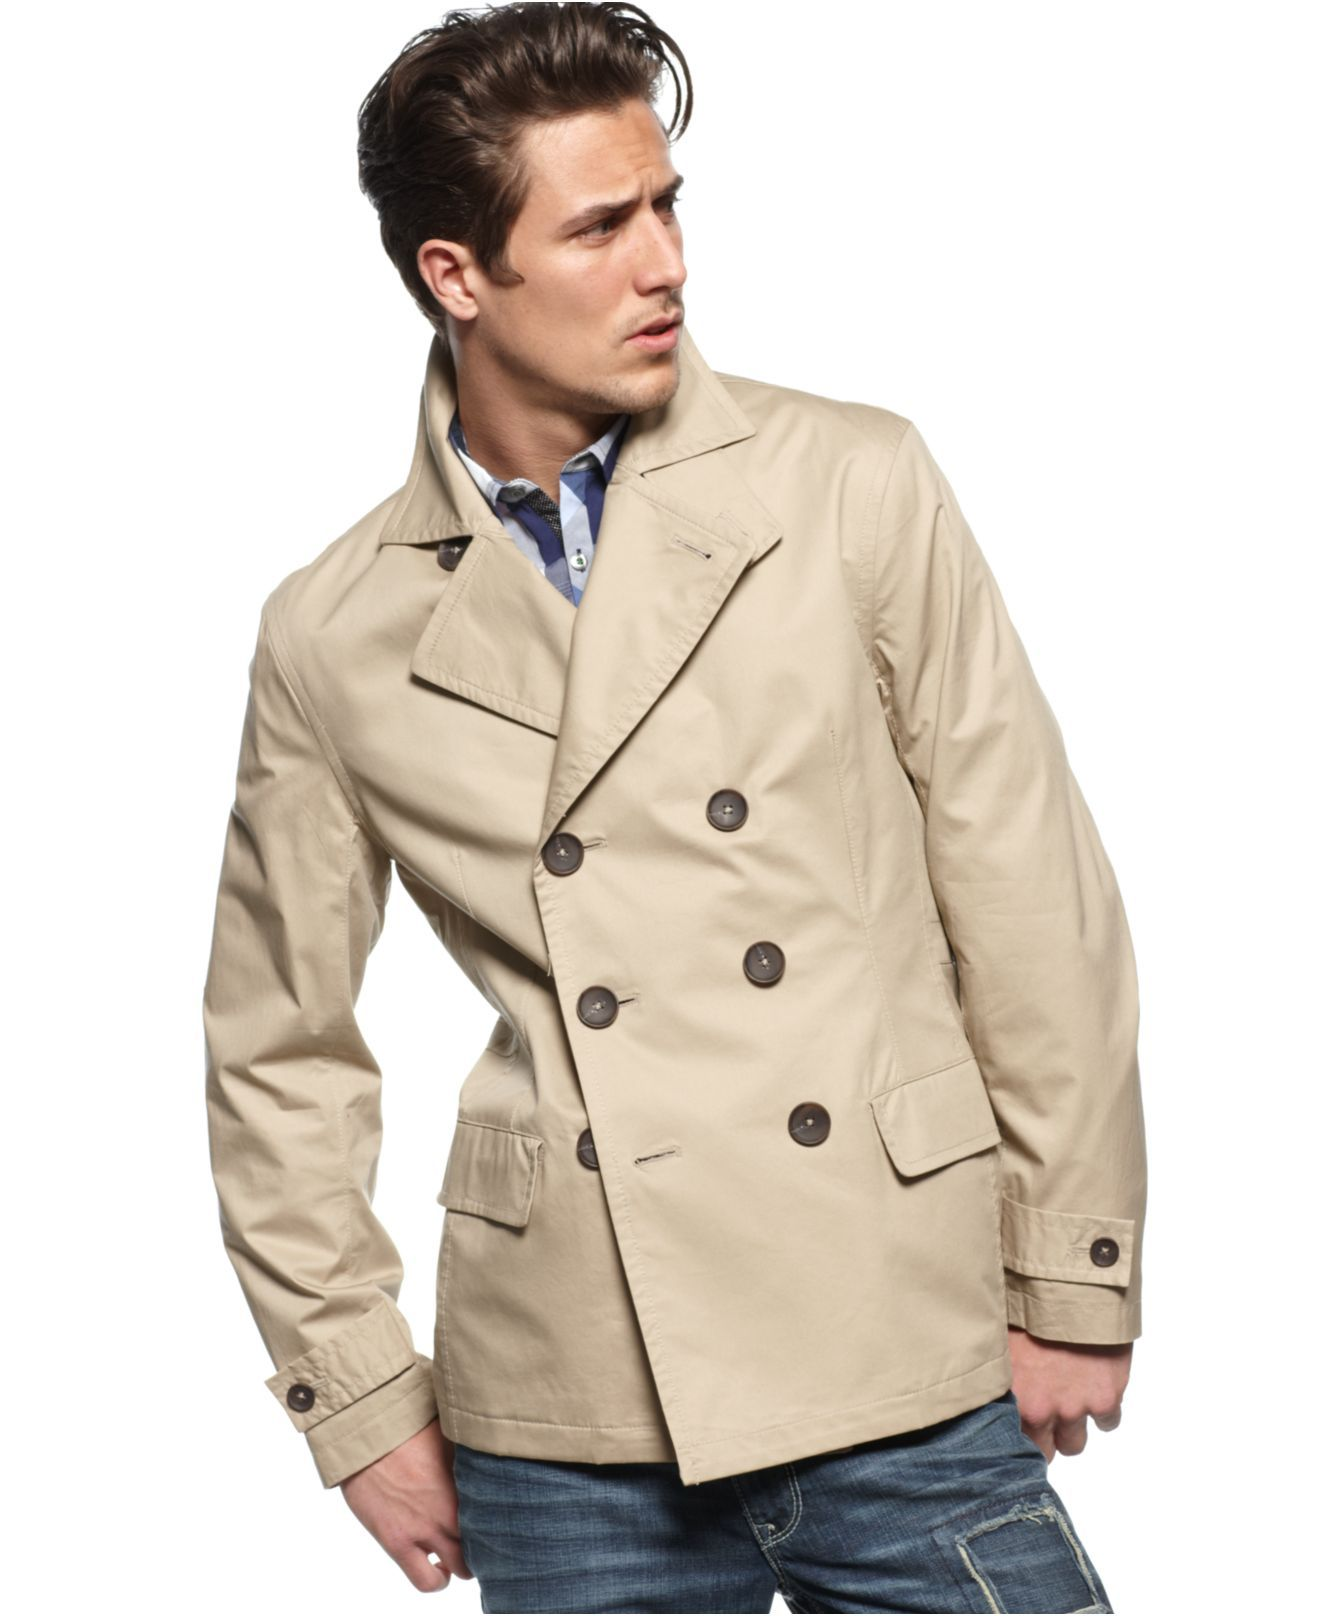 Inc International Concepts Coat Double Breasted Trench Coat Mens Coats Jackets Macy S Pin For Pinterest Trench Coat Trench Coat Men Mens Coats [ 1616 x 1320 Pixel ]